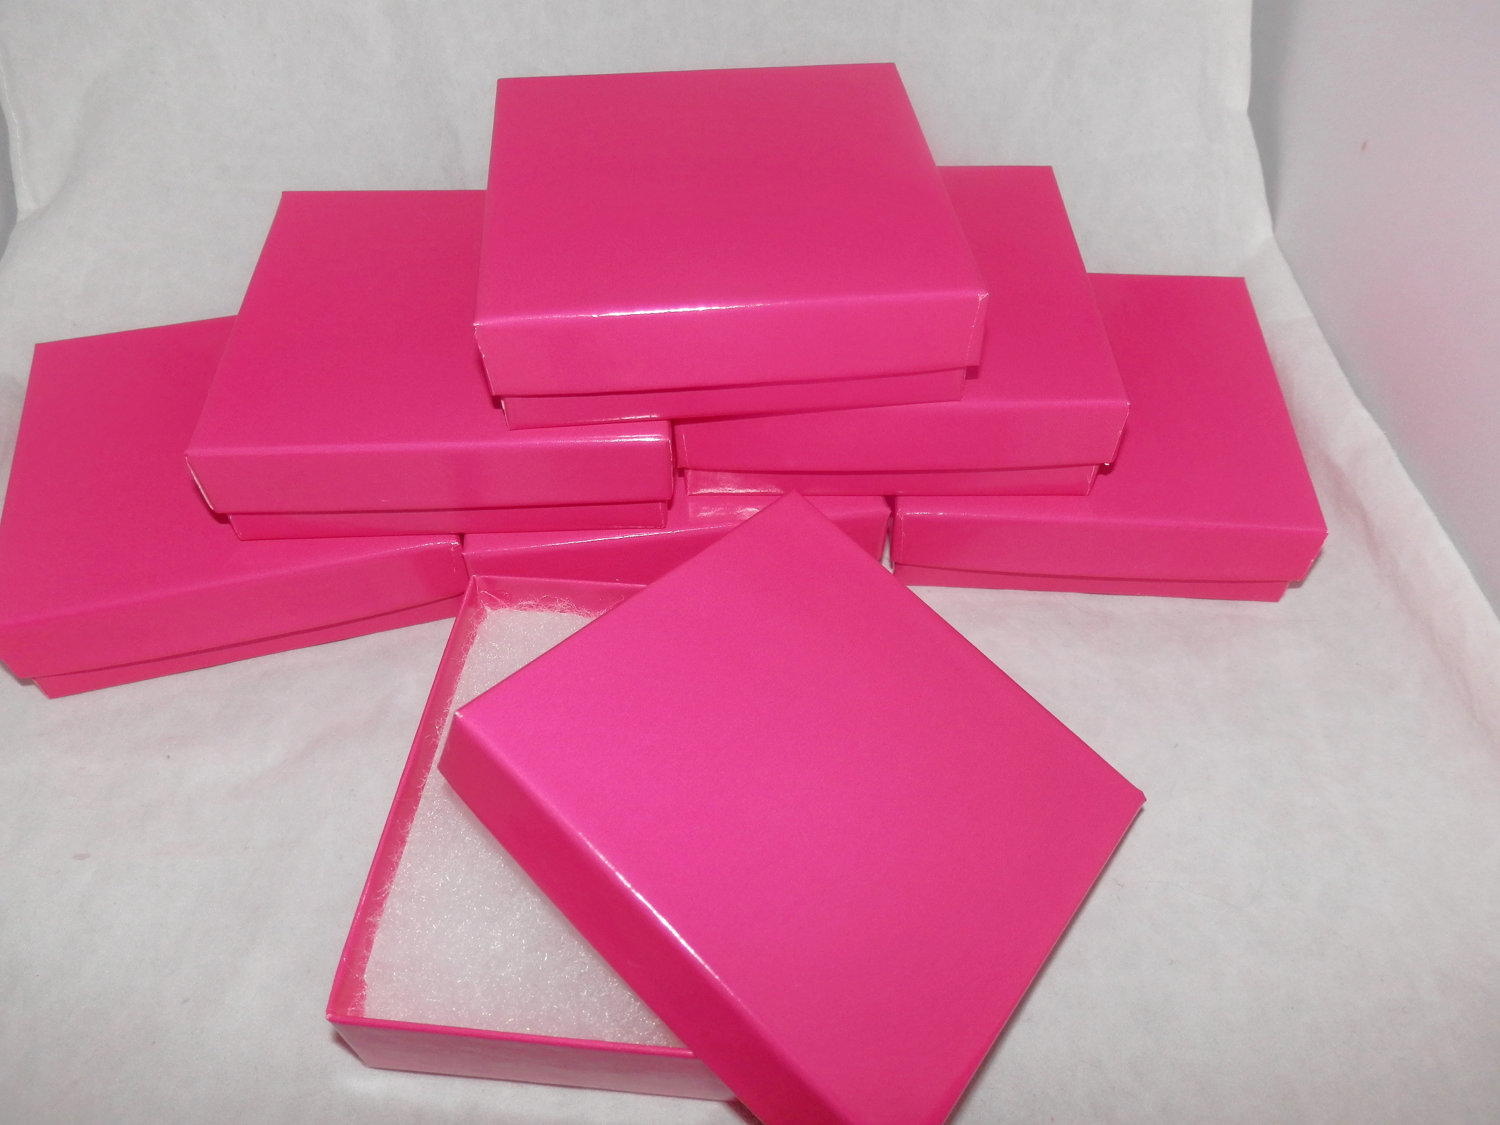 10 Pack 3 5x3 5 Glossy Hot Pink Cotton Filled Jewelry Presentation Boxes Neon Pink Color Gift Boxes Vibrant Pink Boxes